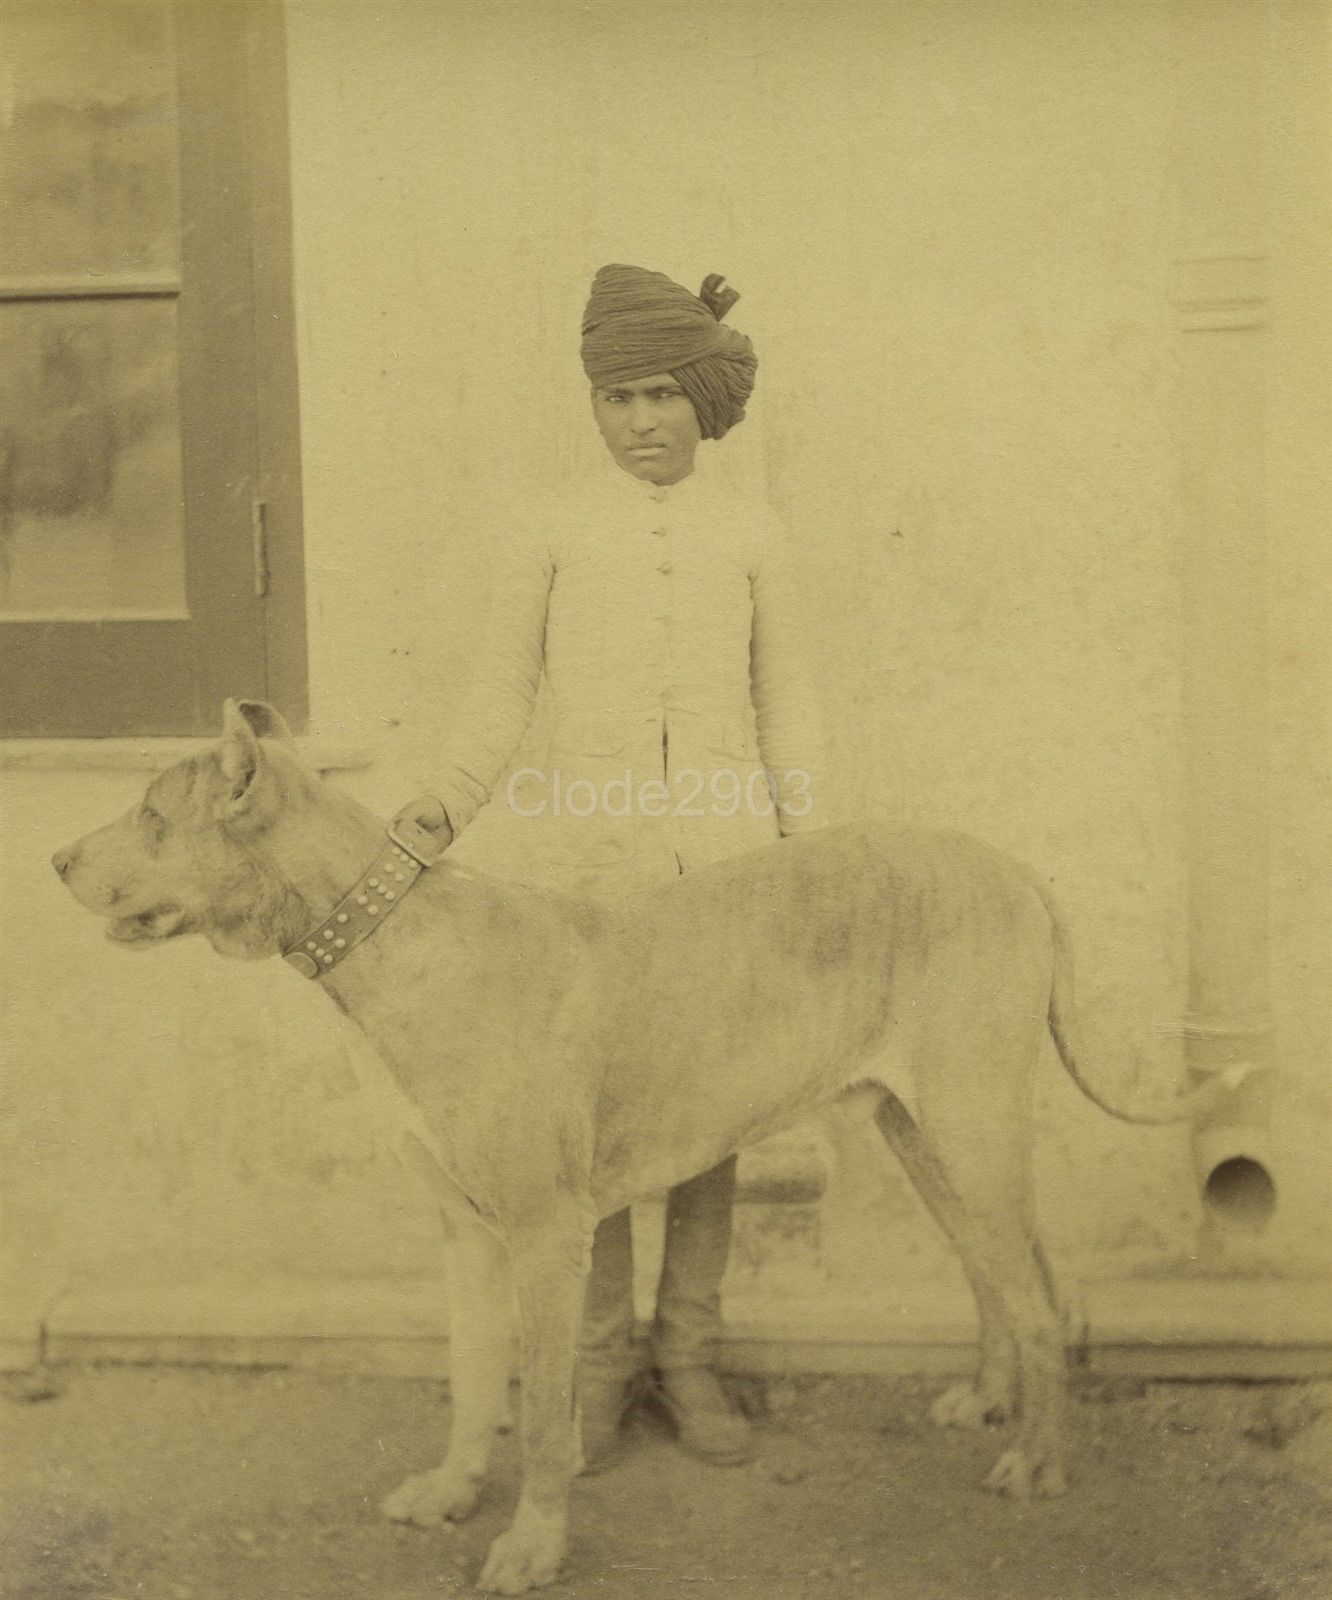 Indian Man Holding a Collared Dog - c1890's